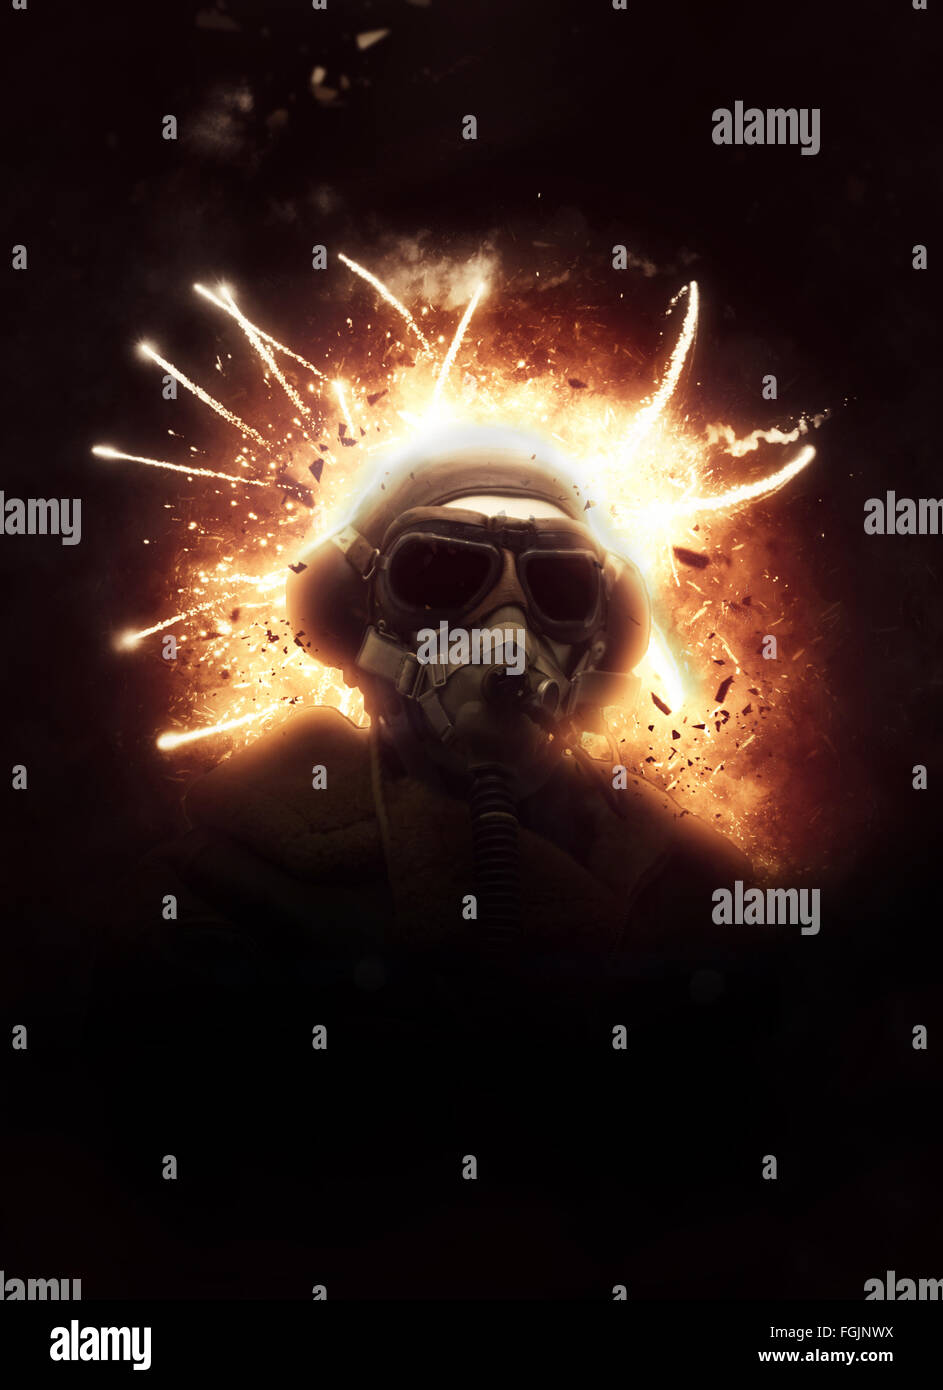 Dramatic image of a WW1 soldier wearing a vintage gas mask and helmet in action against a fiery explosion with sparks - Stock Image